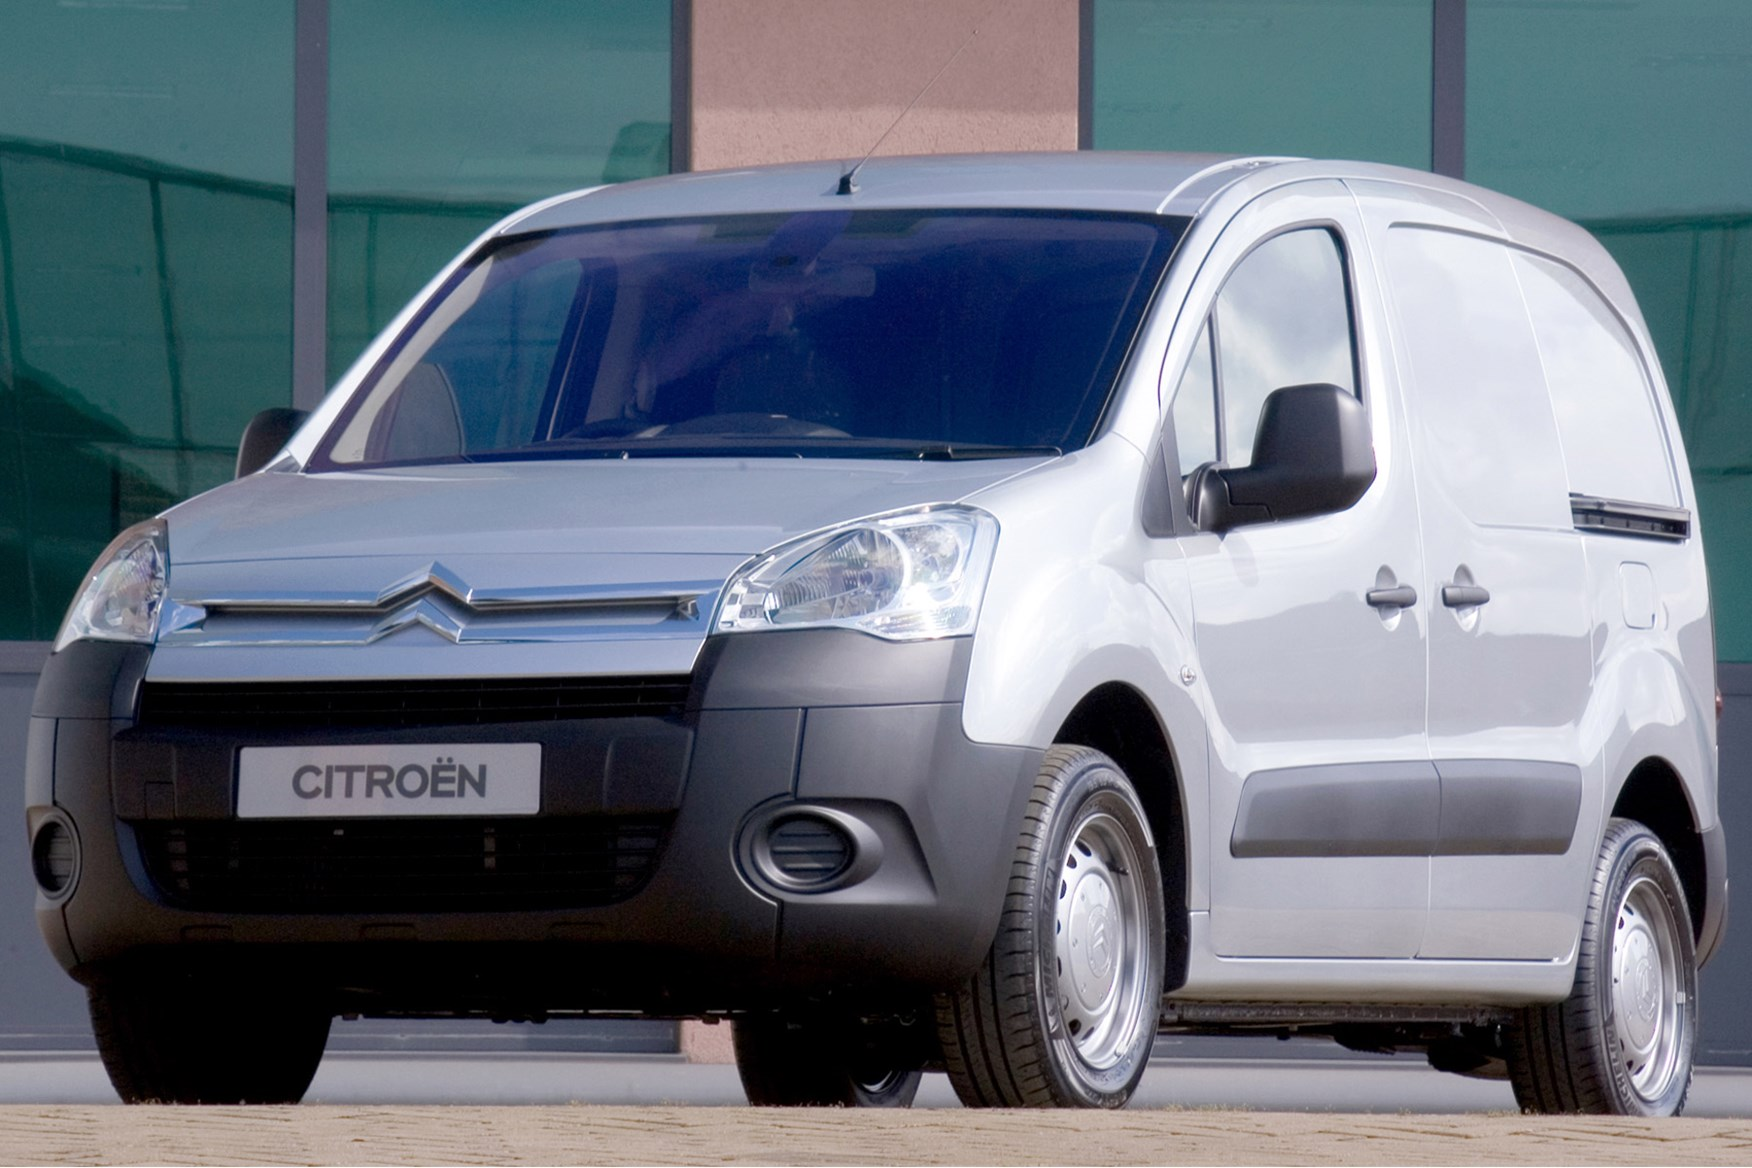 Citroen Berlingo full review on Parkers Vans - front